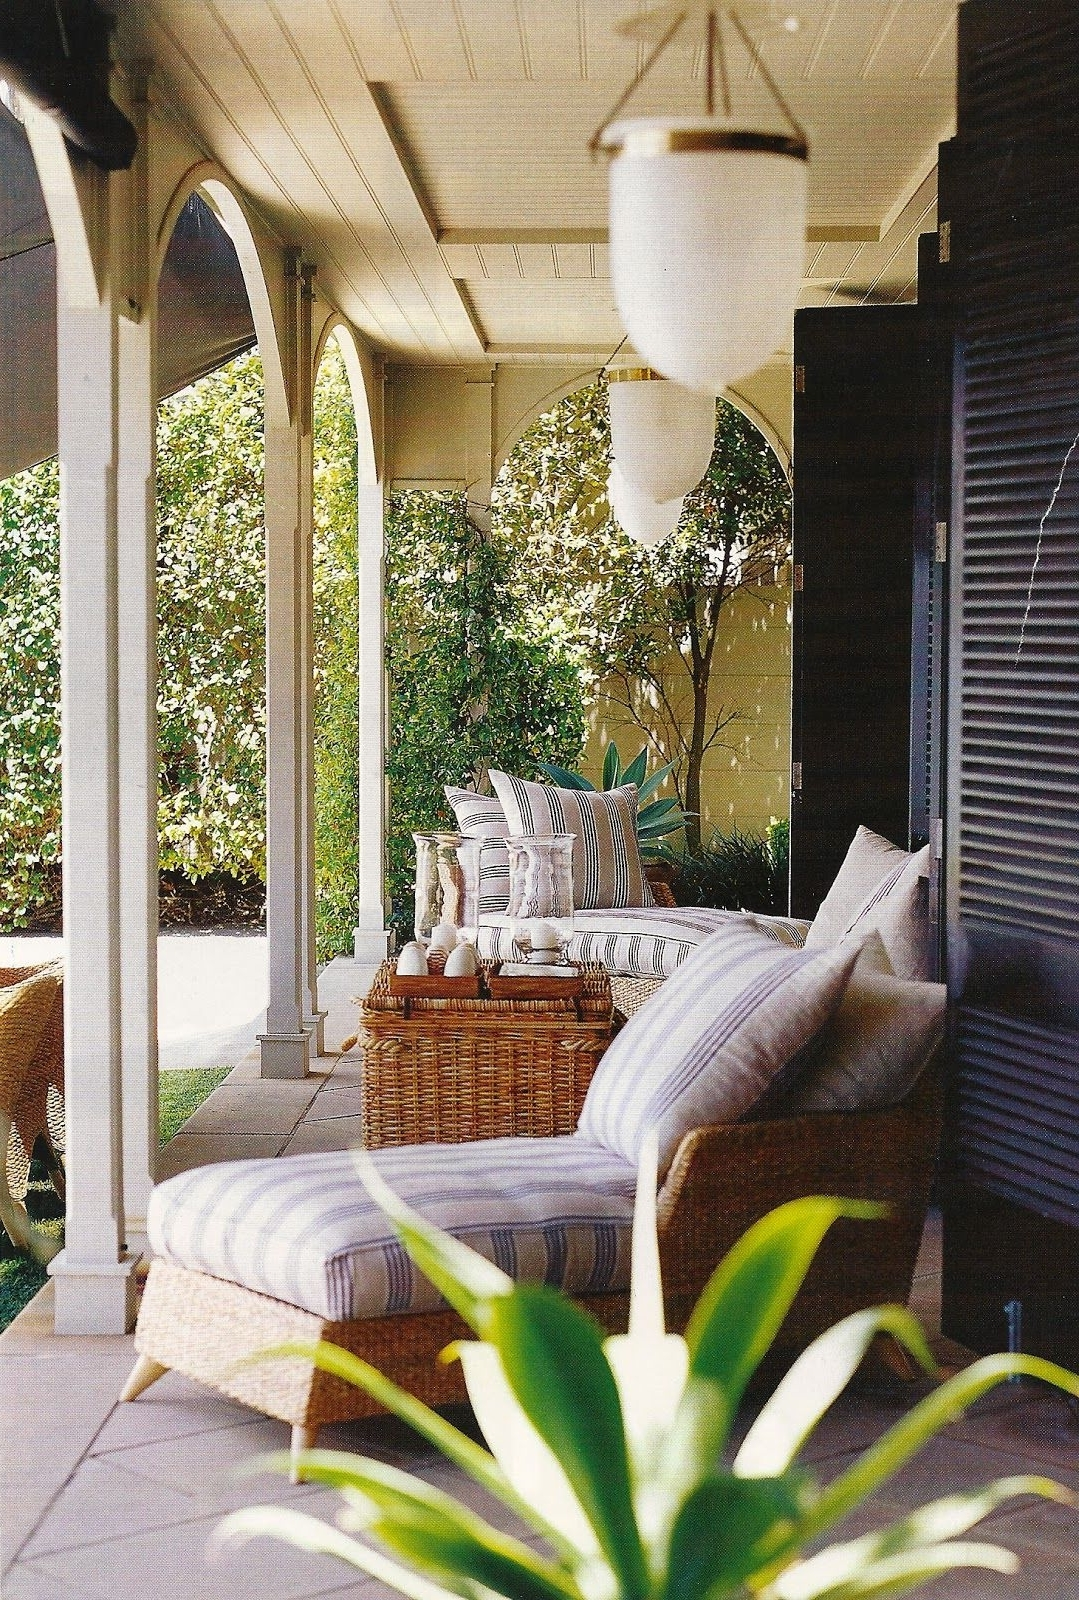 Most Up To Date Striped Chaise, Wicker Basket, Shells, Timber Veranda Detailing With Inside Outdoor Oversized Lanterns (View 10 of 20)